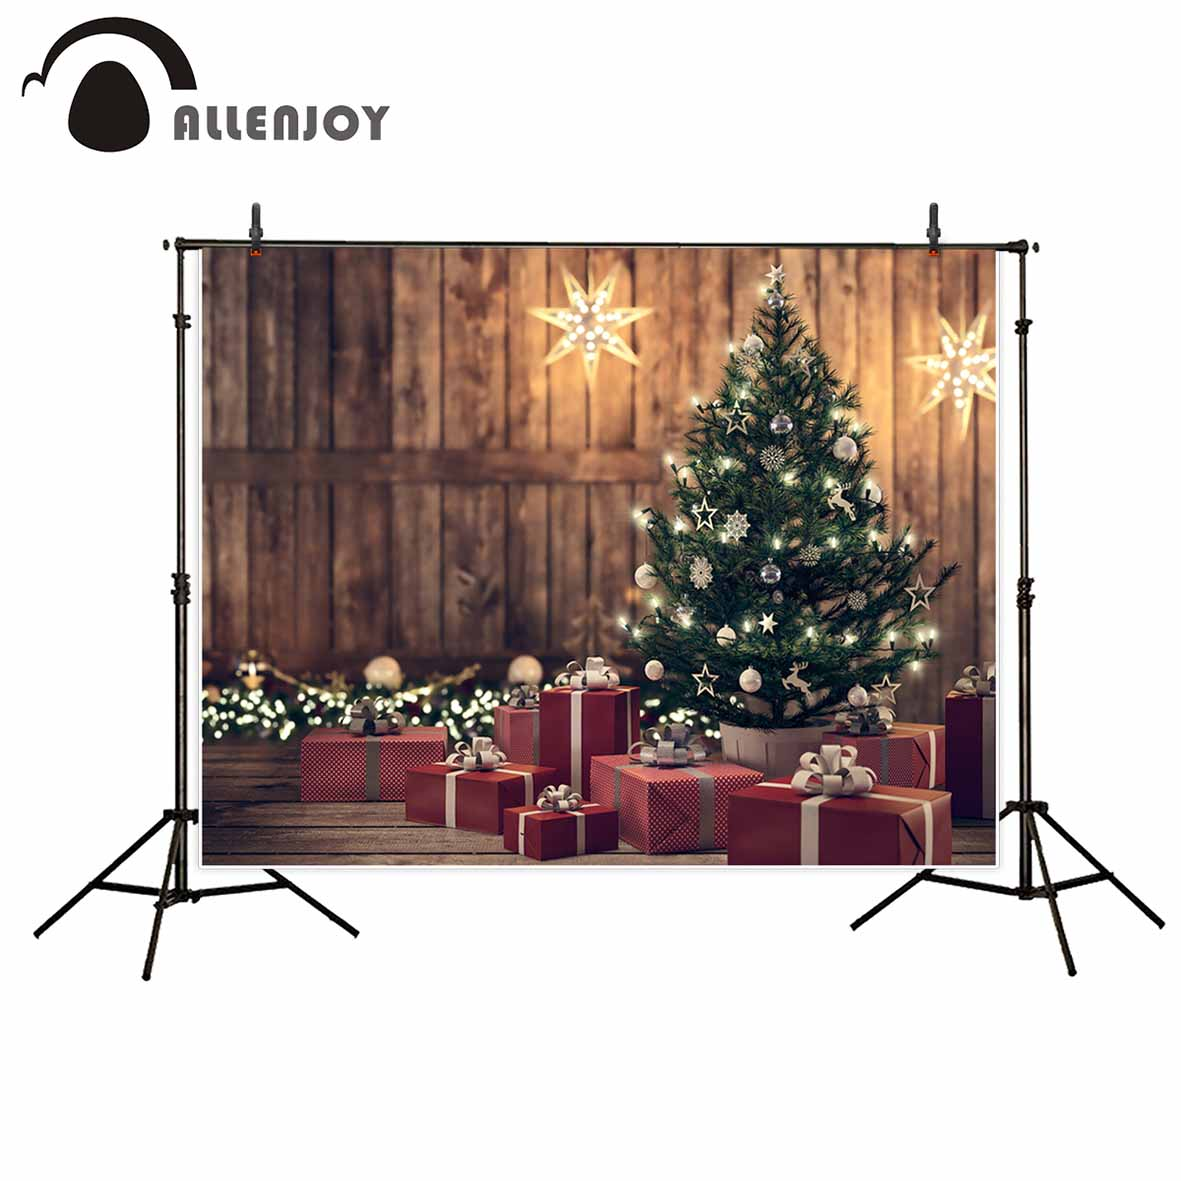 Allenjoy photography backdrops Christmas wood tree glitter vintage background photobooth photo studio photocall allenjoy photography background winter small town snow tree mountain natual backdrops photo studio professional photocall